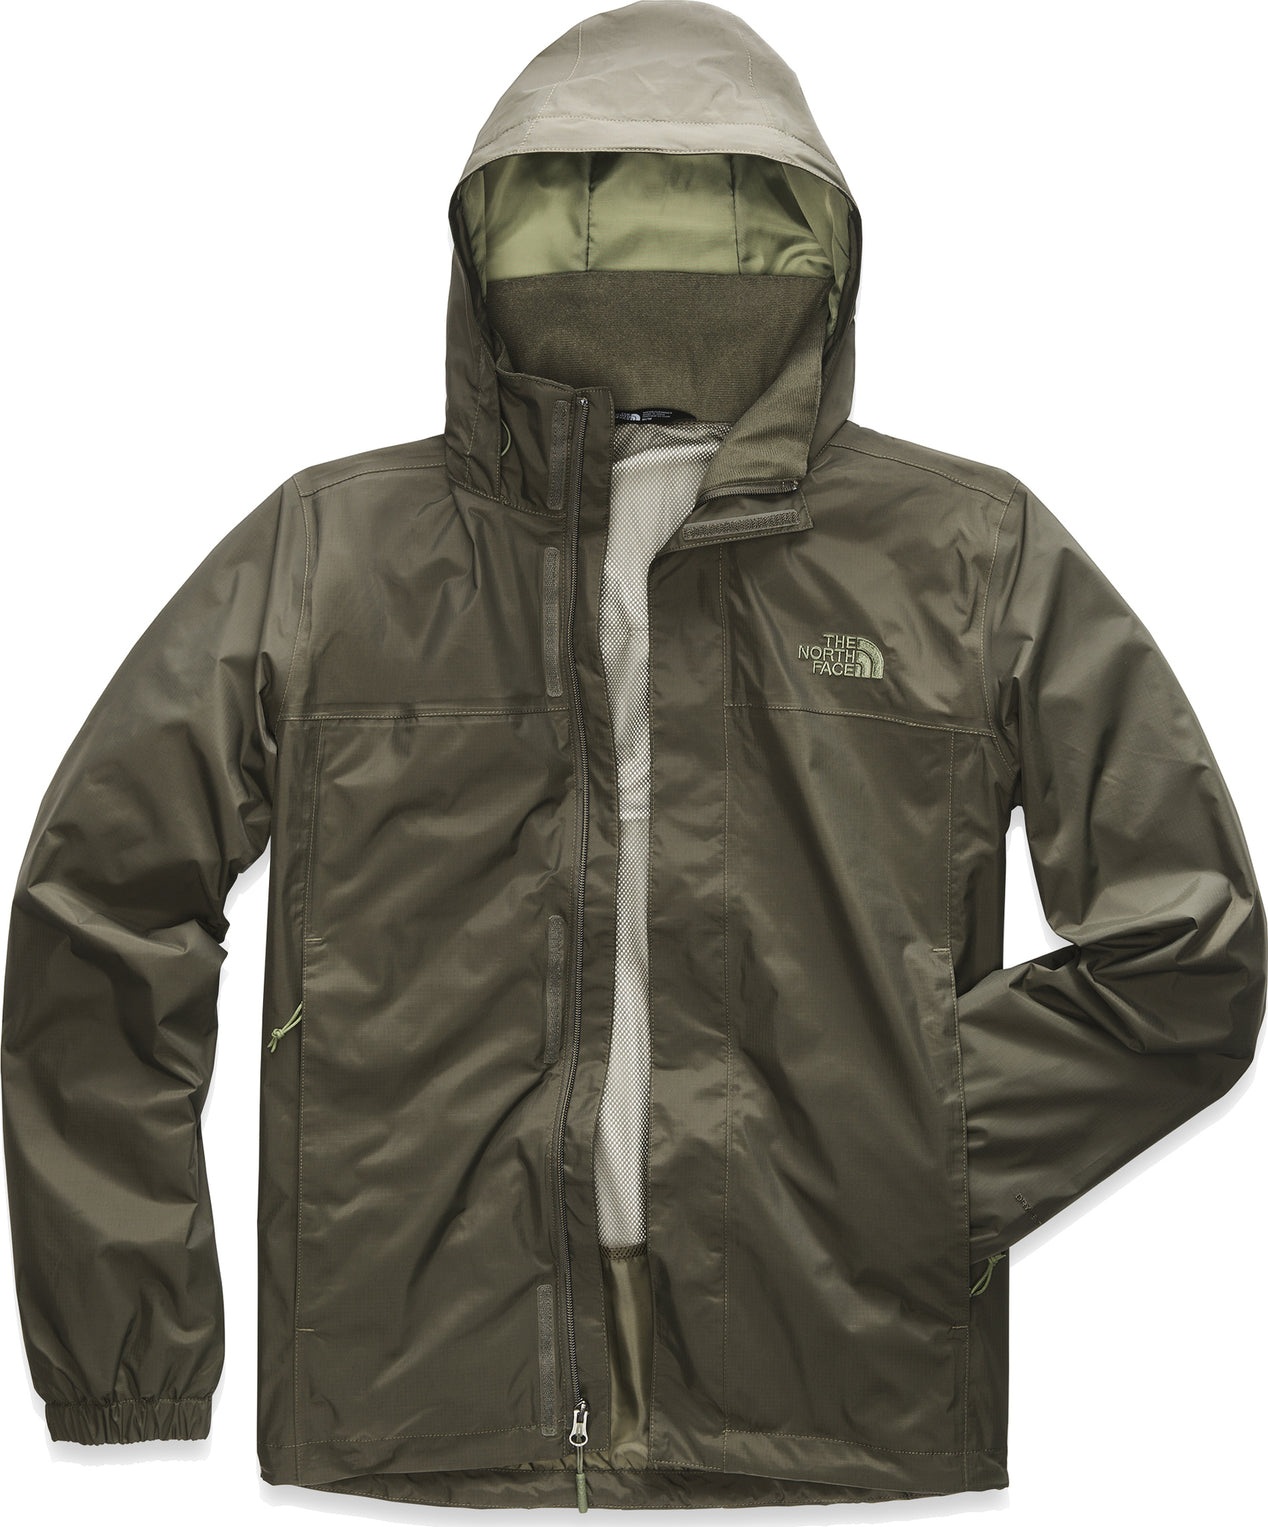 d5812250d The North Face Resolve 2 Jacket - Men's